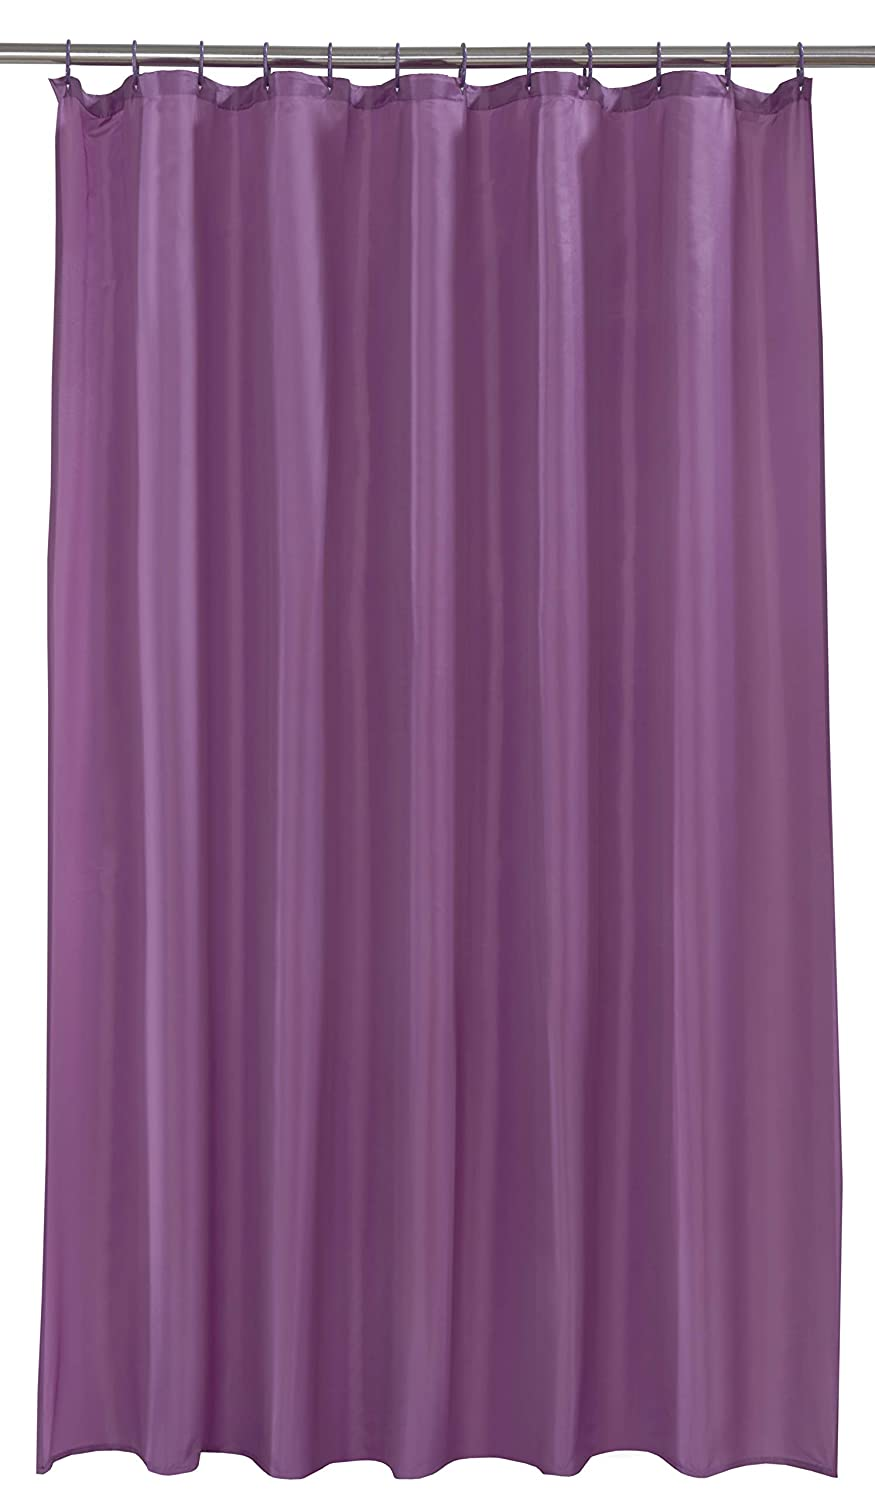 Spectrum 180 x 180 cm Shower Curtain and Rings Set, Berry Home Creations 88639